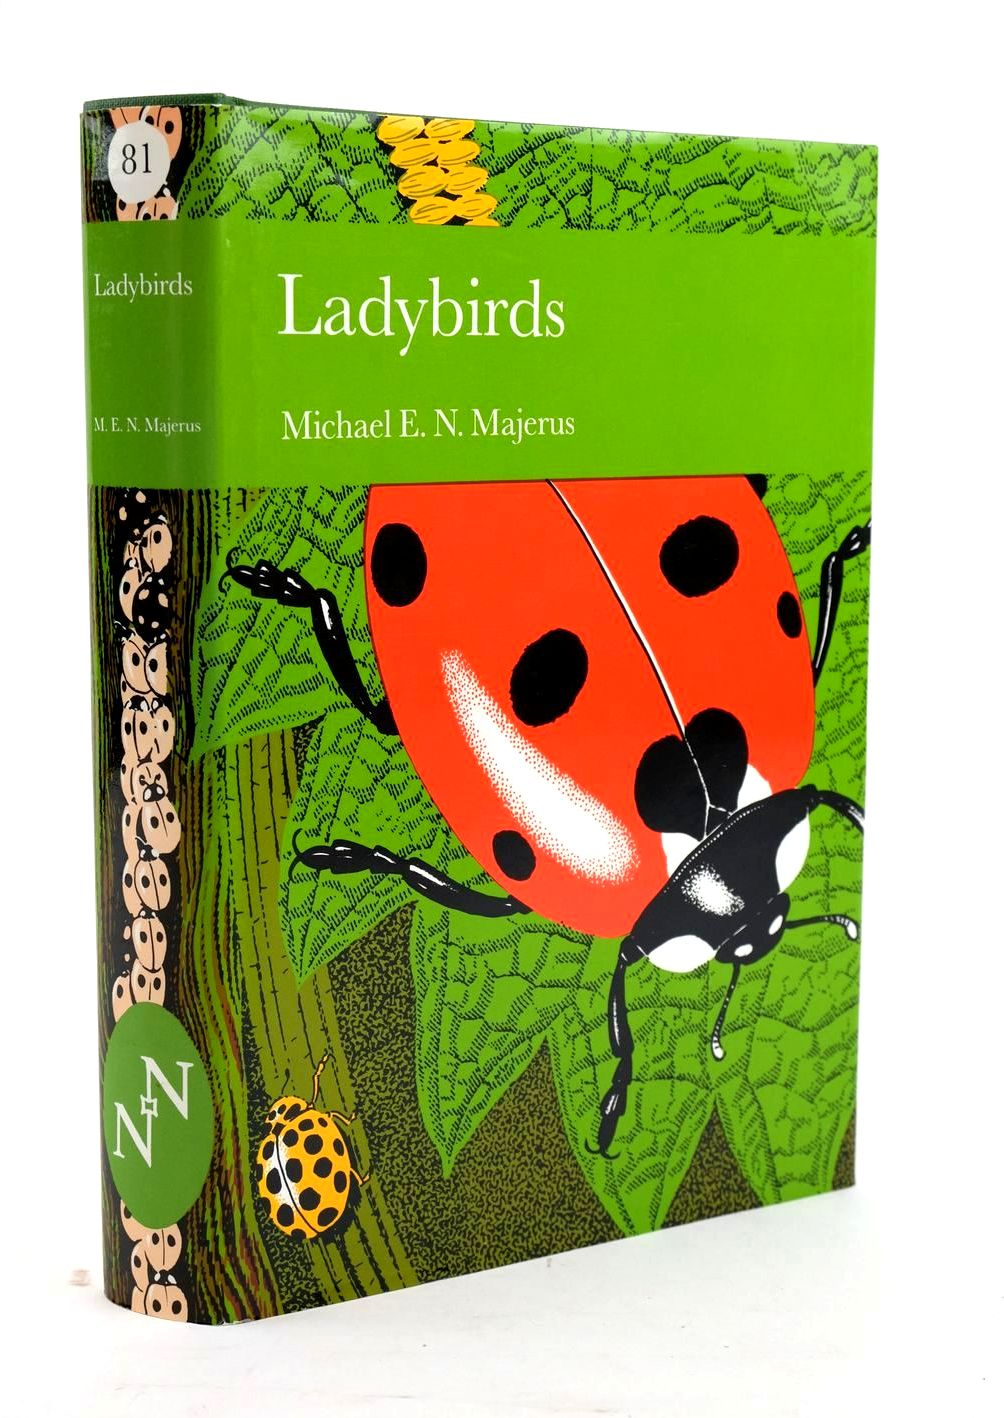 Photo of LADYBIRDS (NN 81) written by Majerus, Michael E.N. published by Harper Collins (STOCK CODE: 1319502)  for sale by Stella & Rose's Books